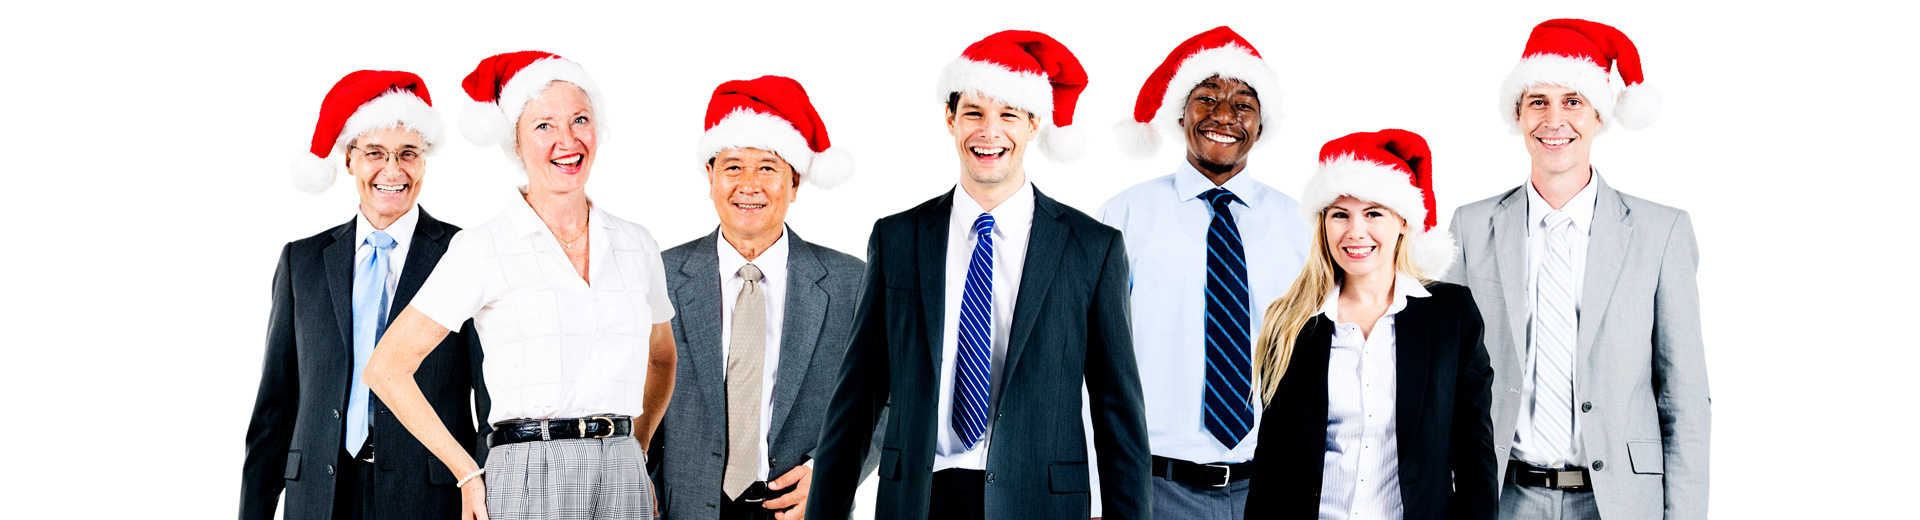 The Movie Guide To Surviving Your Office Christmas Party Virgin Media